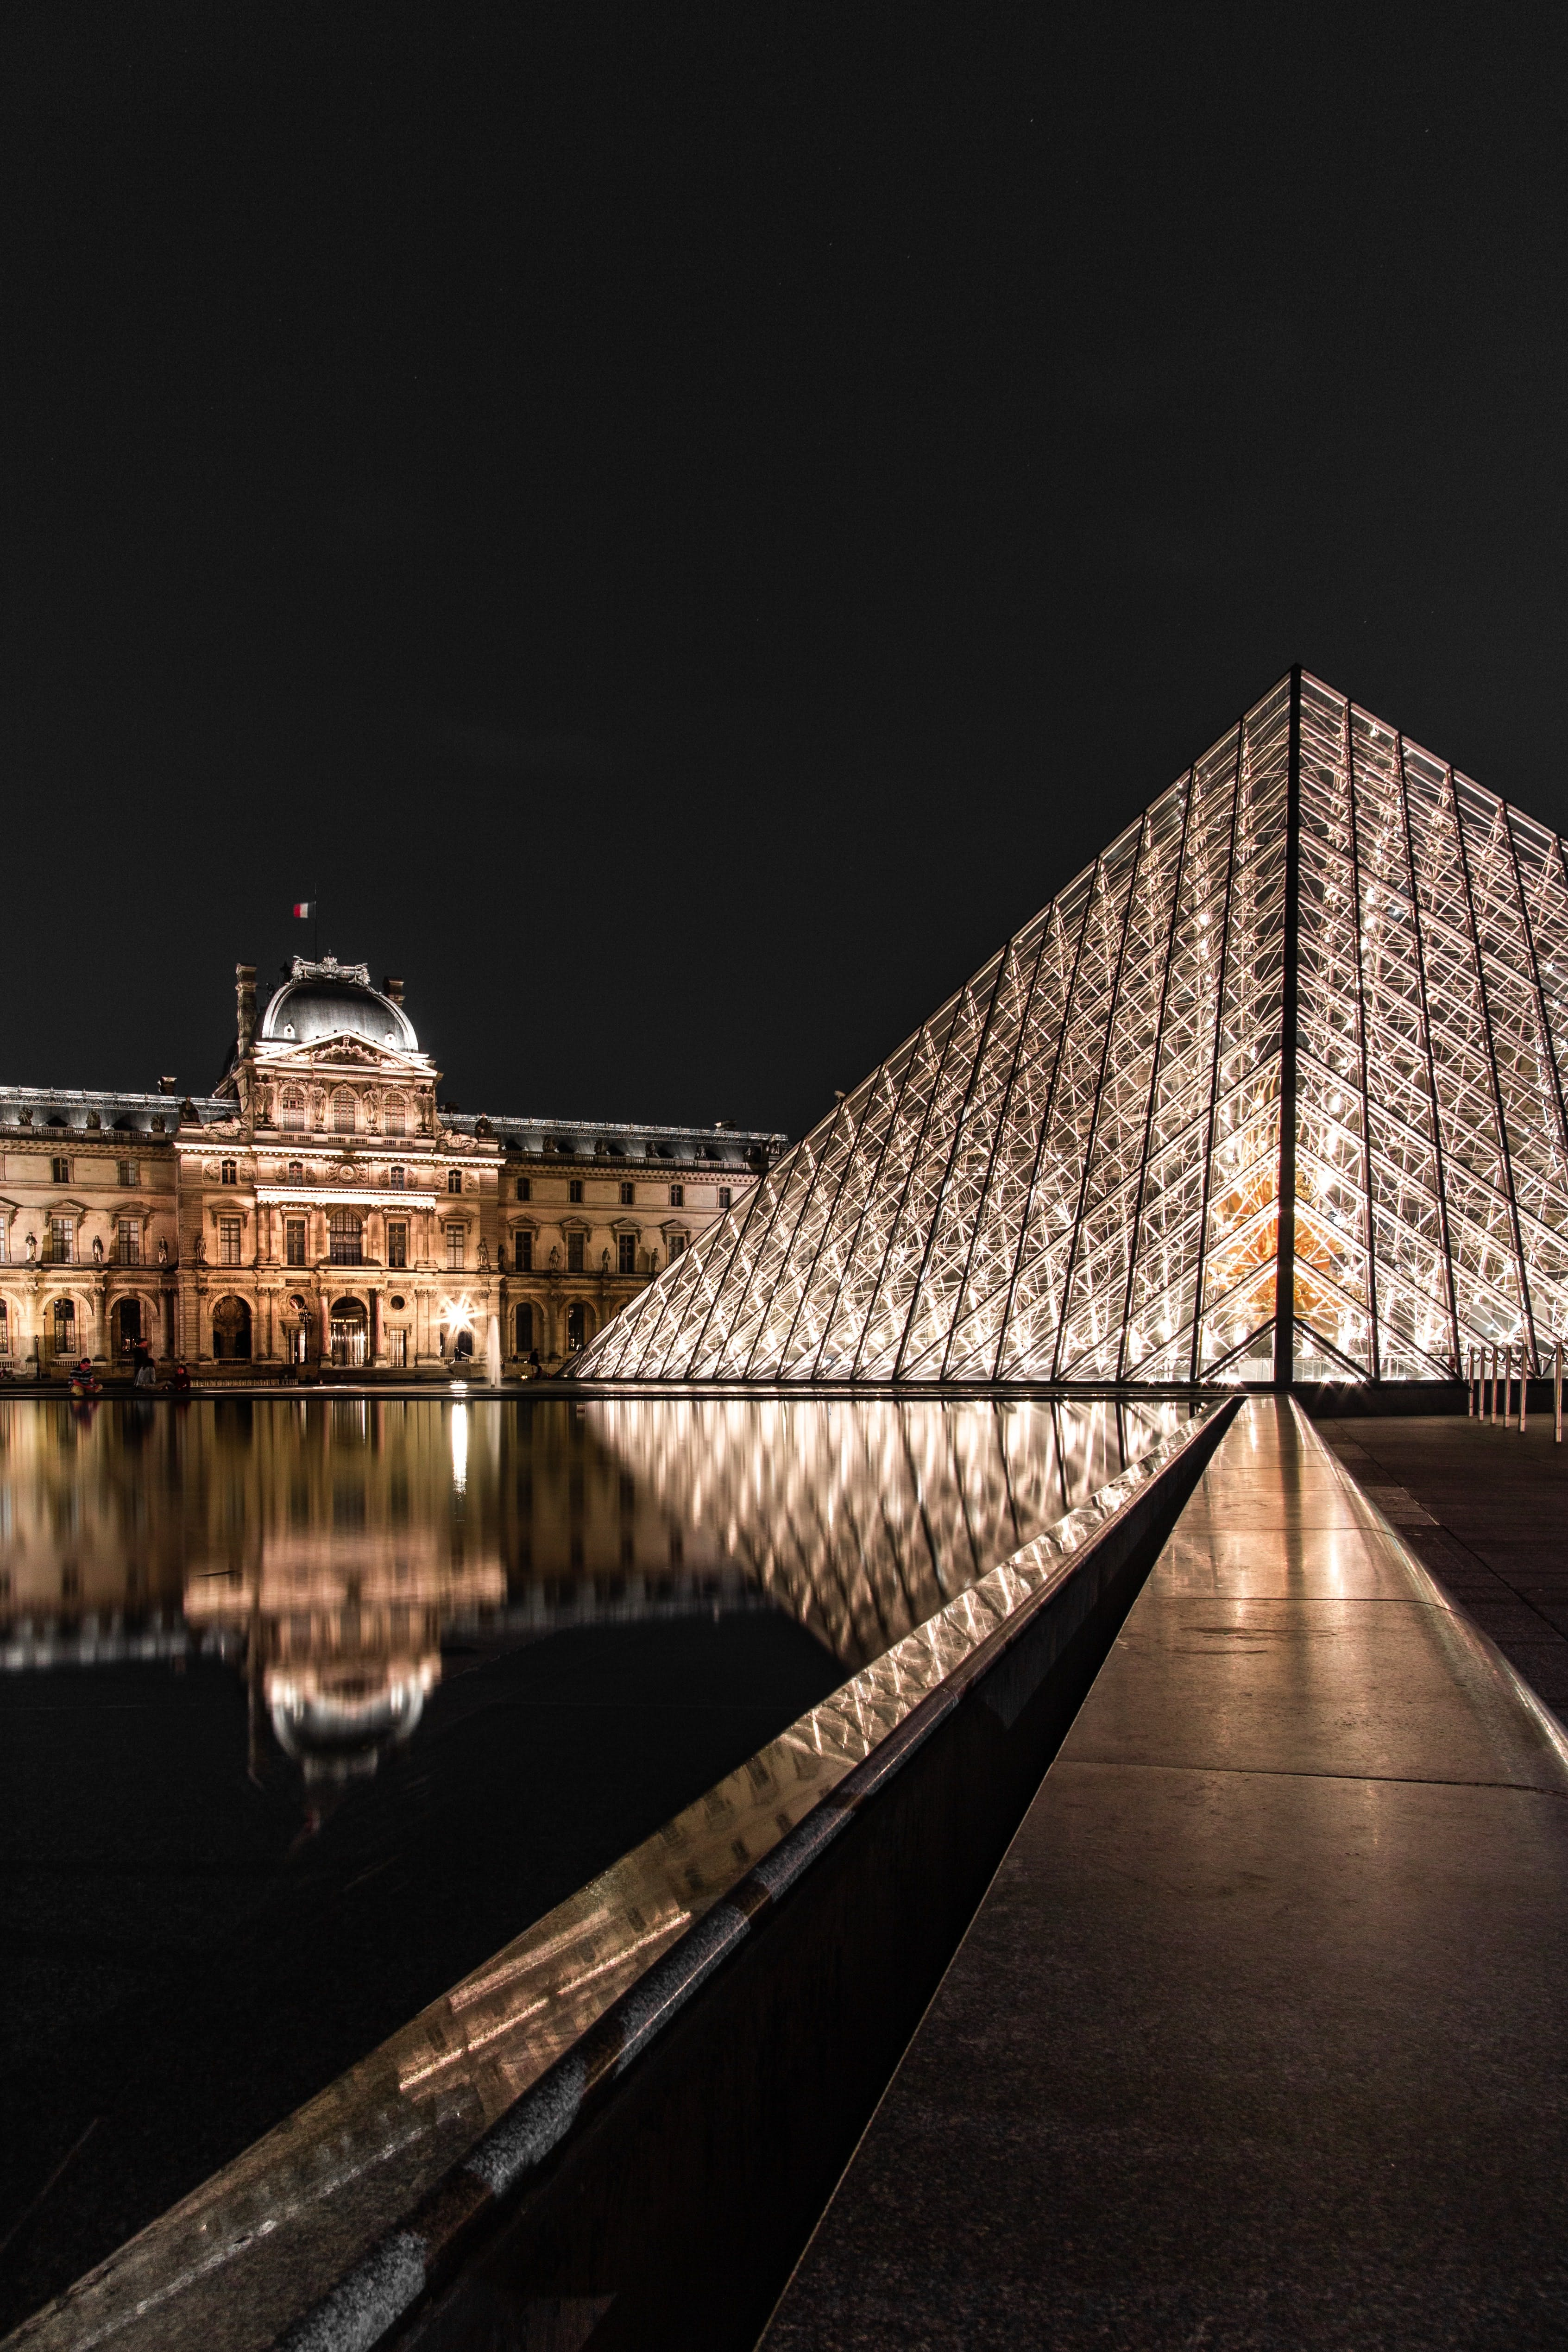 The Ultimate Paris Trip Planner – 1 Day, 3 Day and 5 Day Itineraries